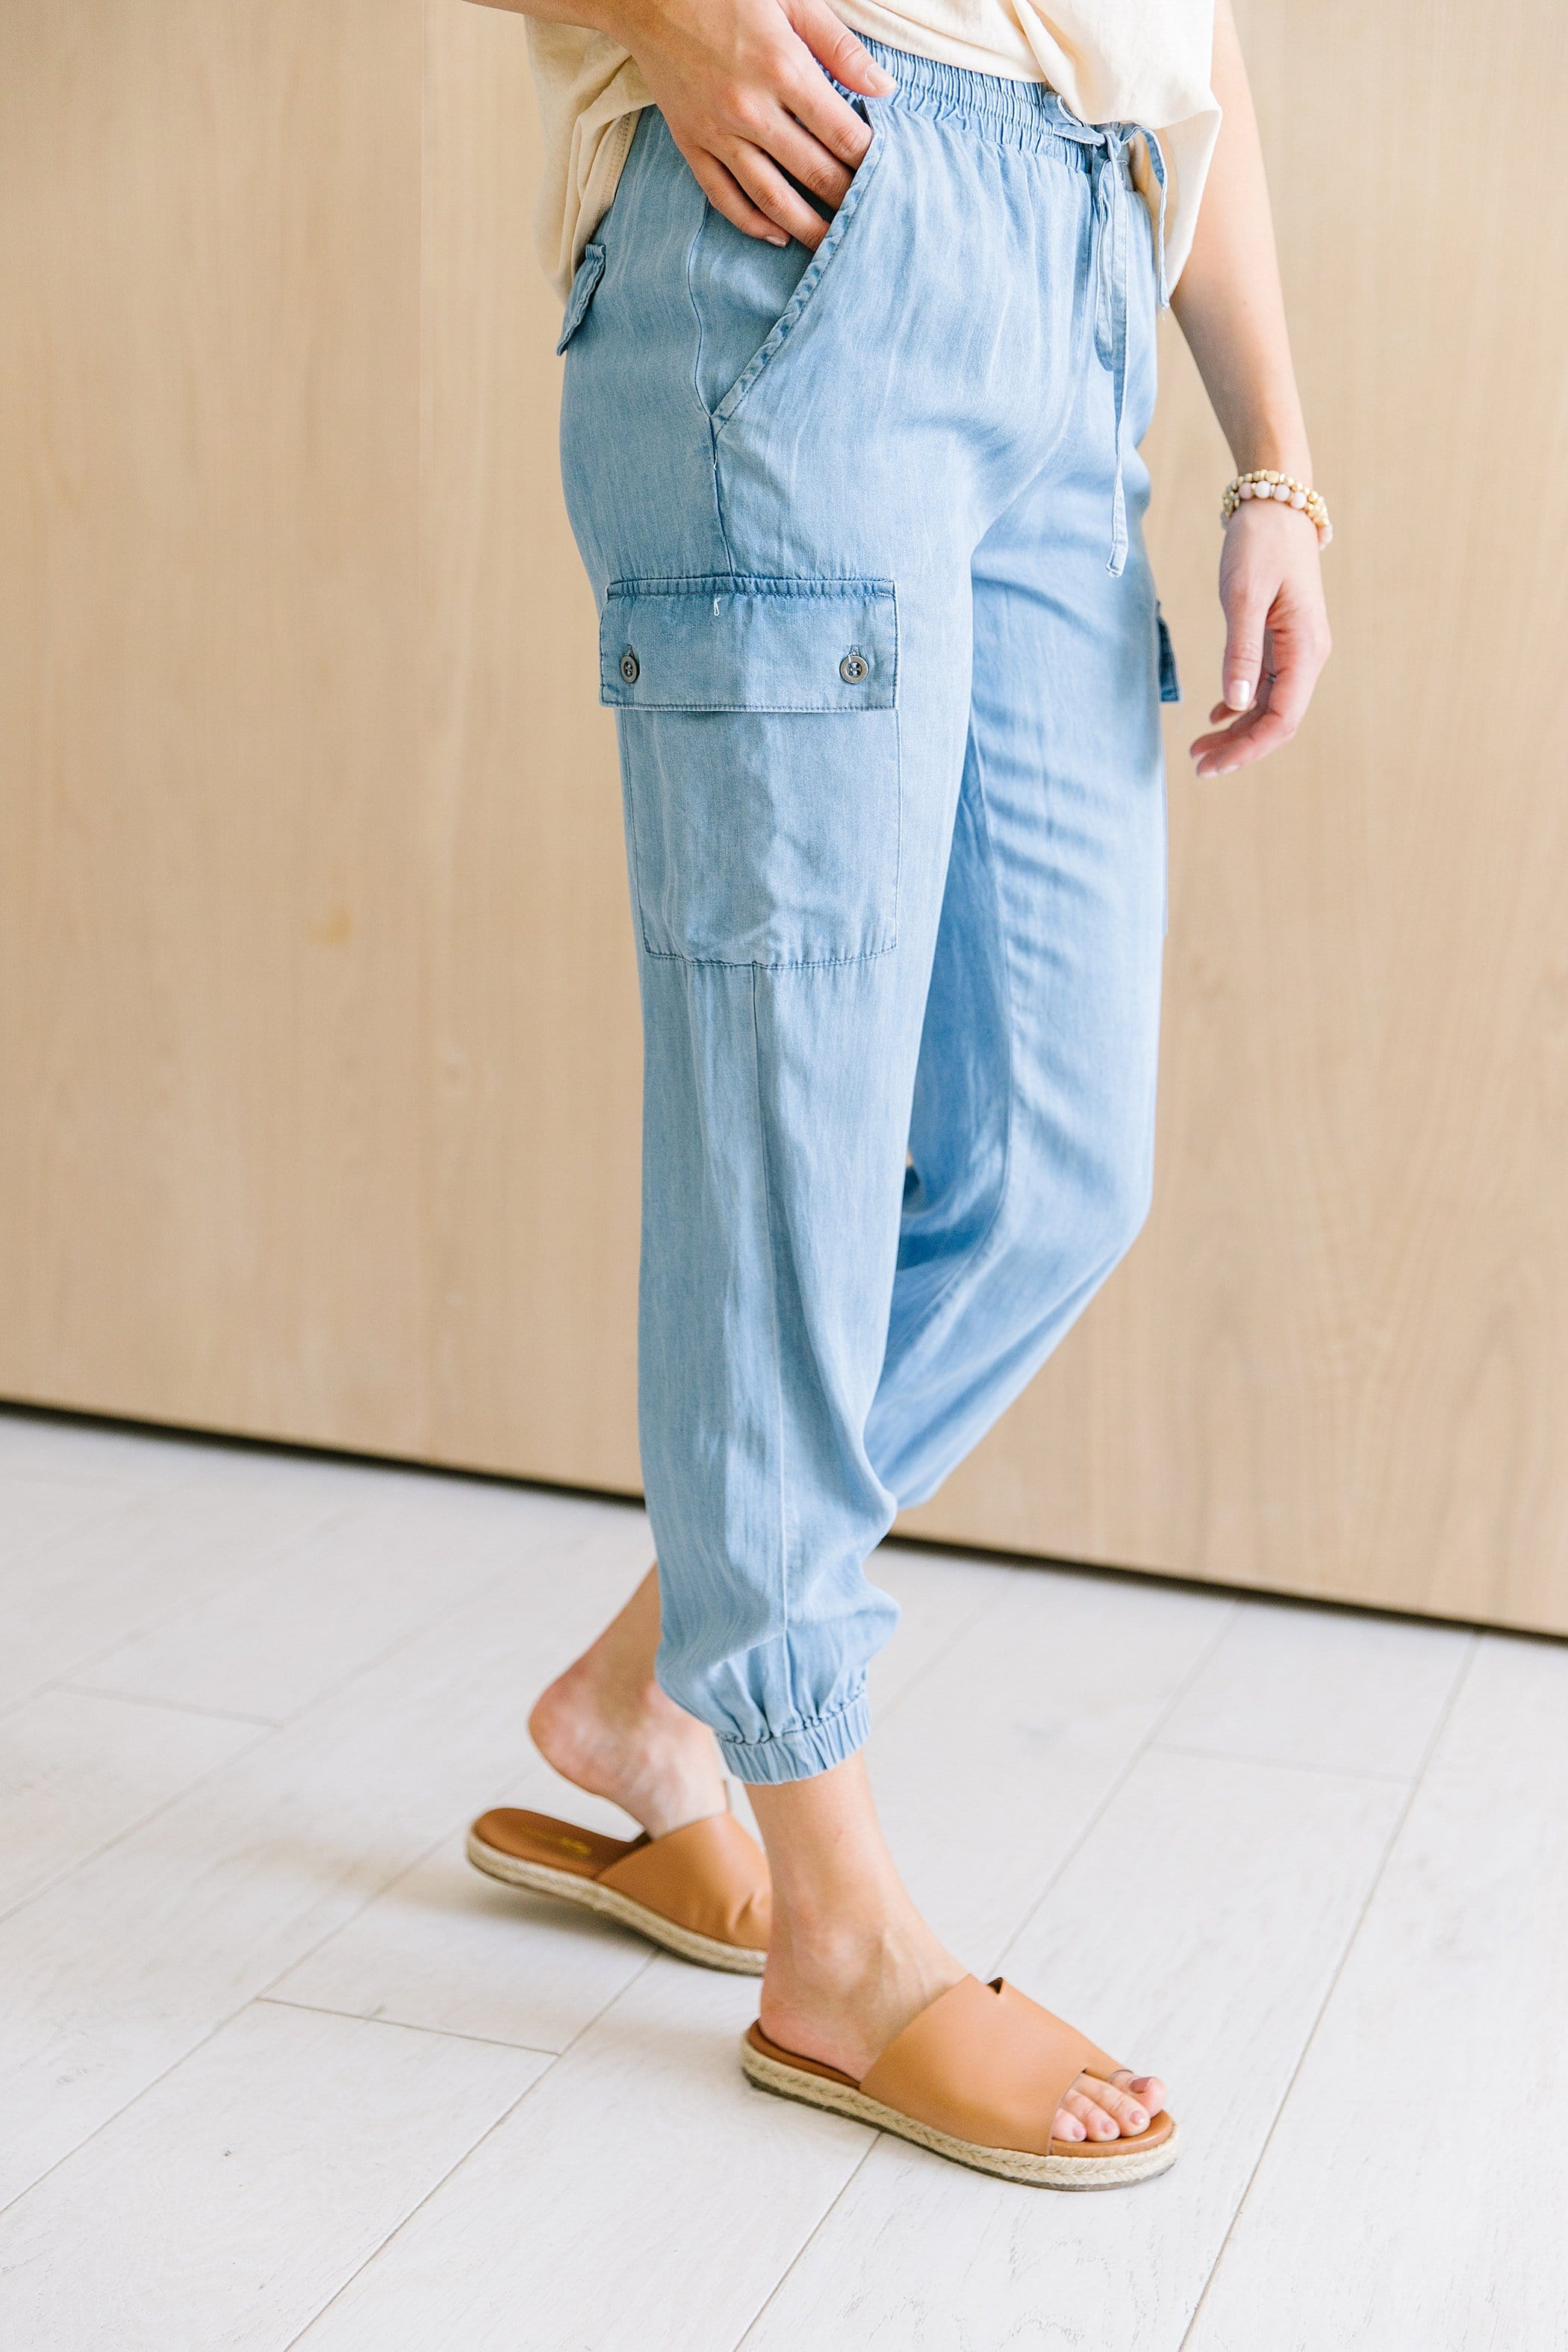 The Monterey Casual Pants in Denim, Rust and Olive